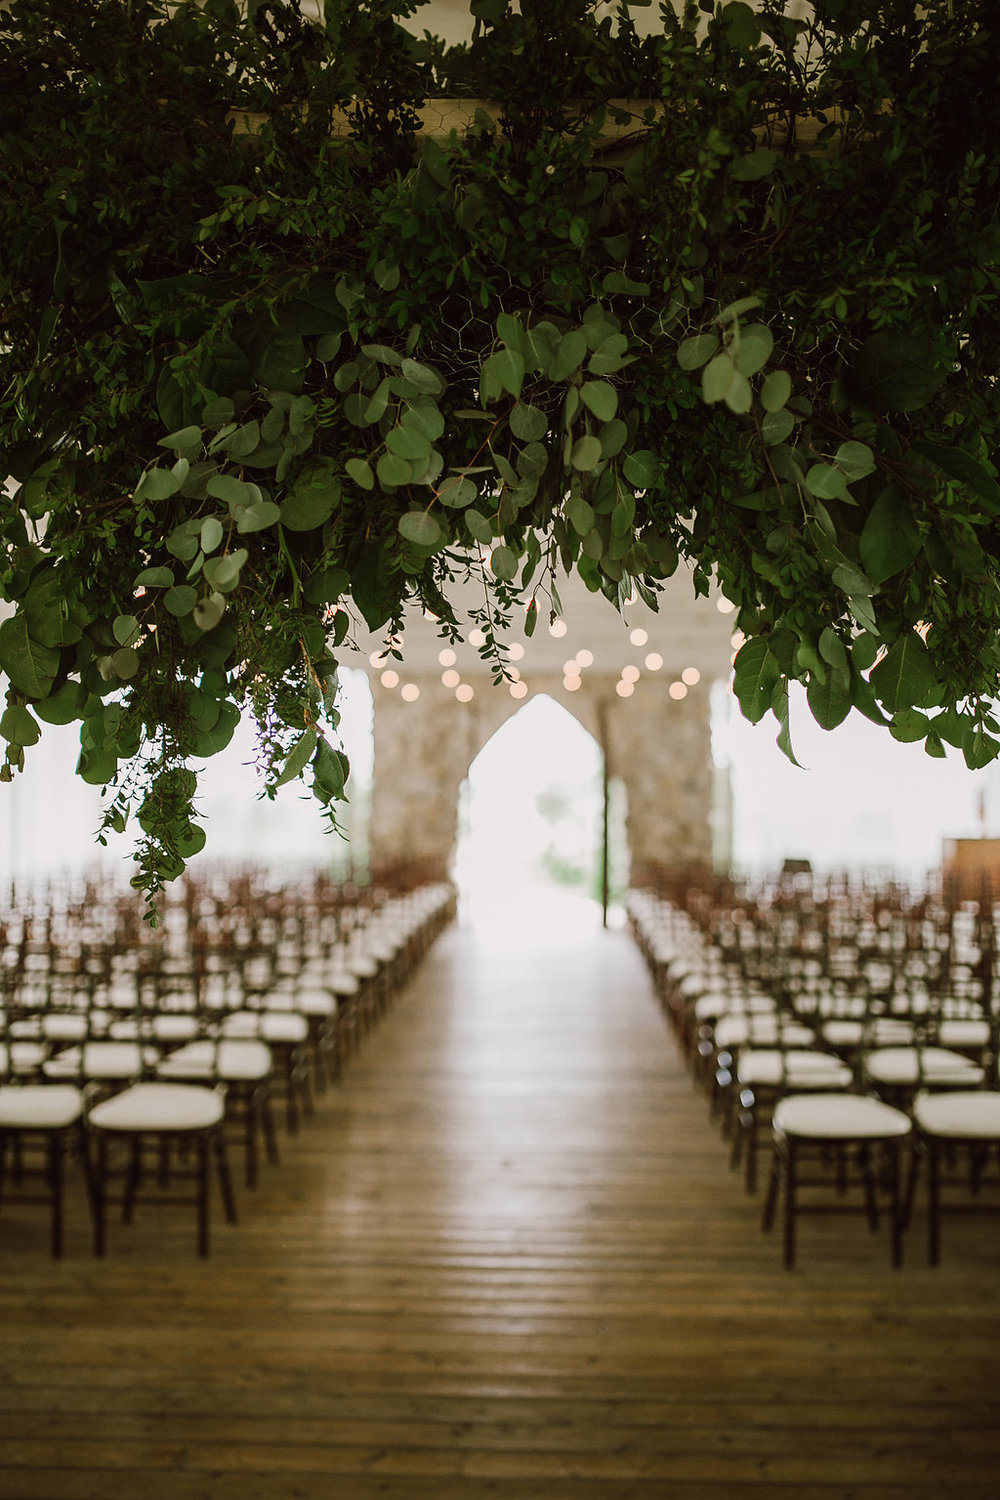 Hanging Greenery Installation - Wedding Decor at Cielo's Garden